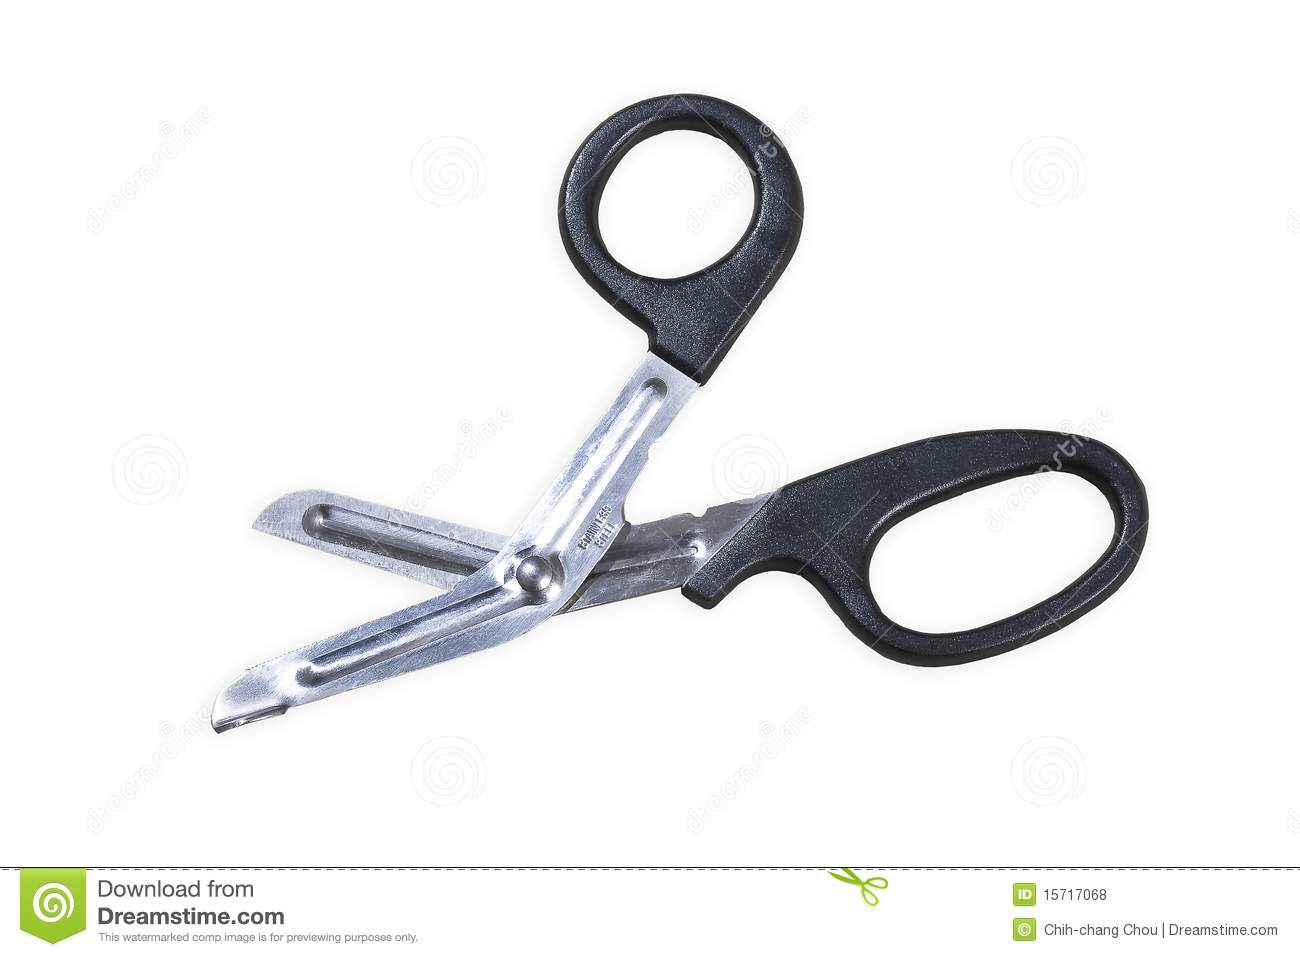 Bandage Scissors Royalty Free Stock Photos   Image  15717068